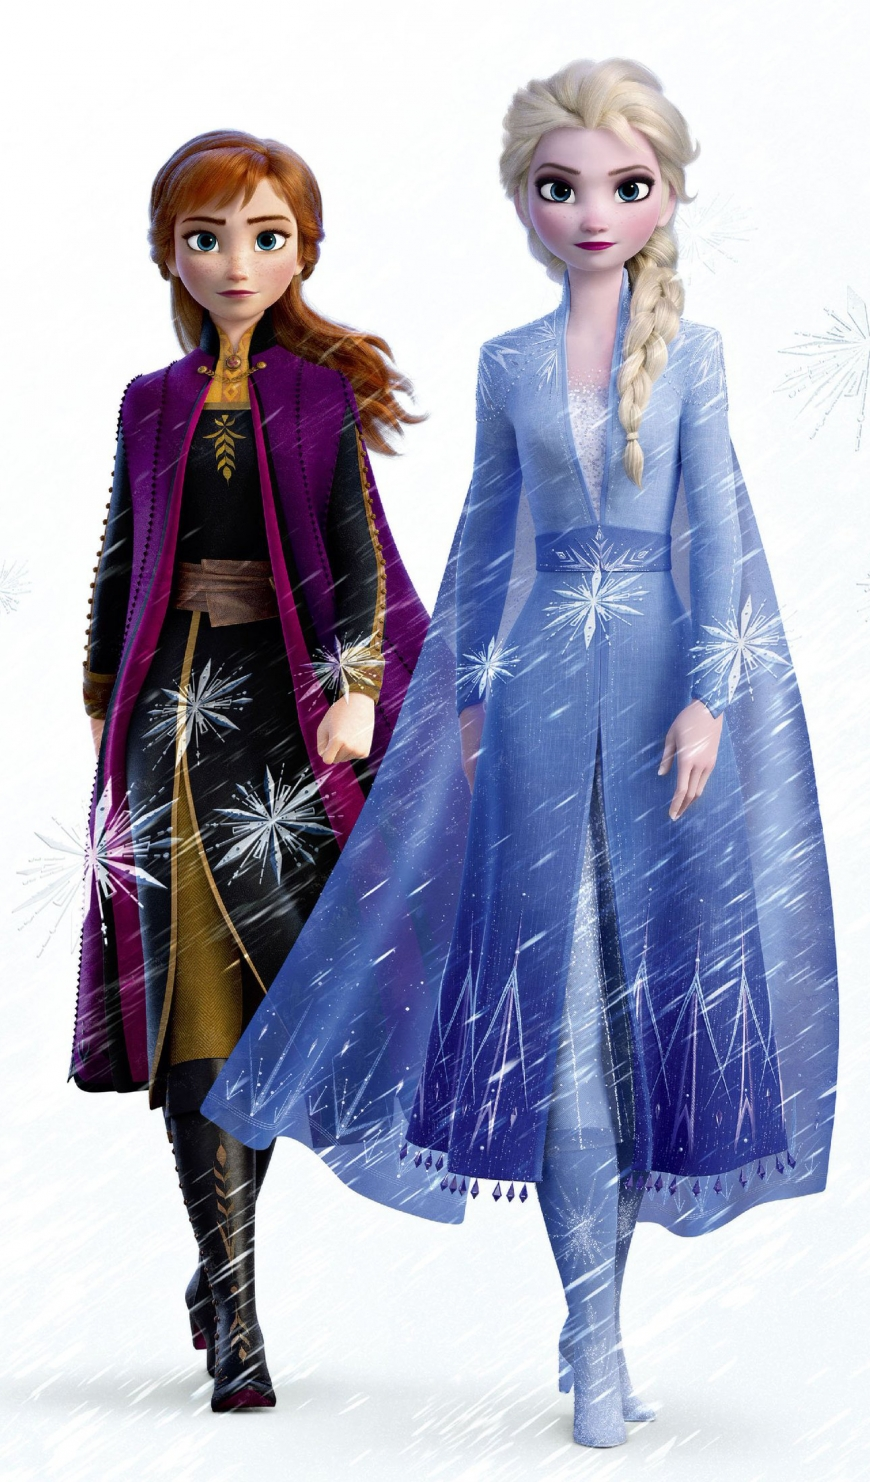 Frozen 2 Elsa and Anna big image